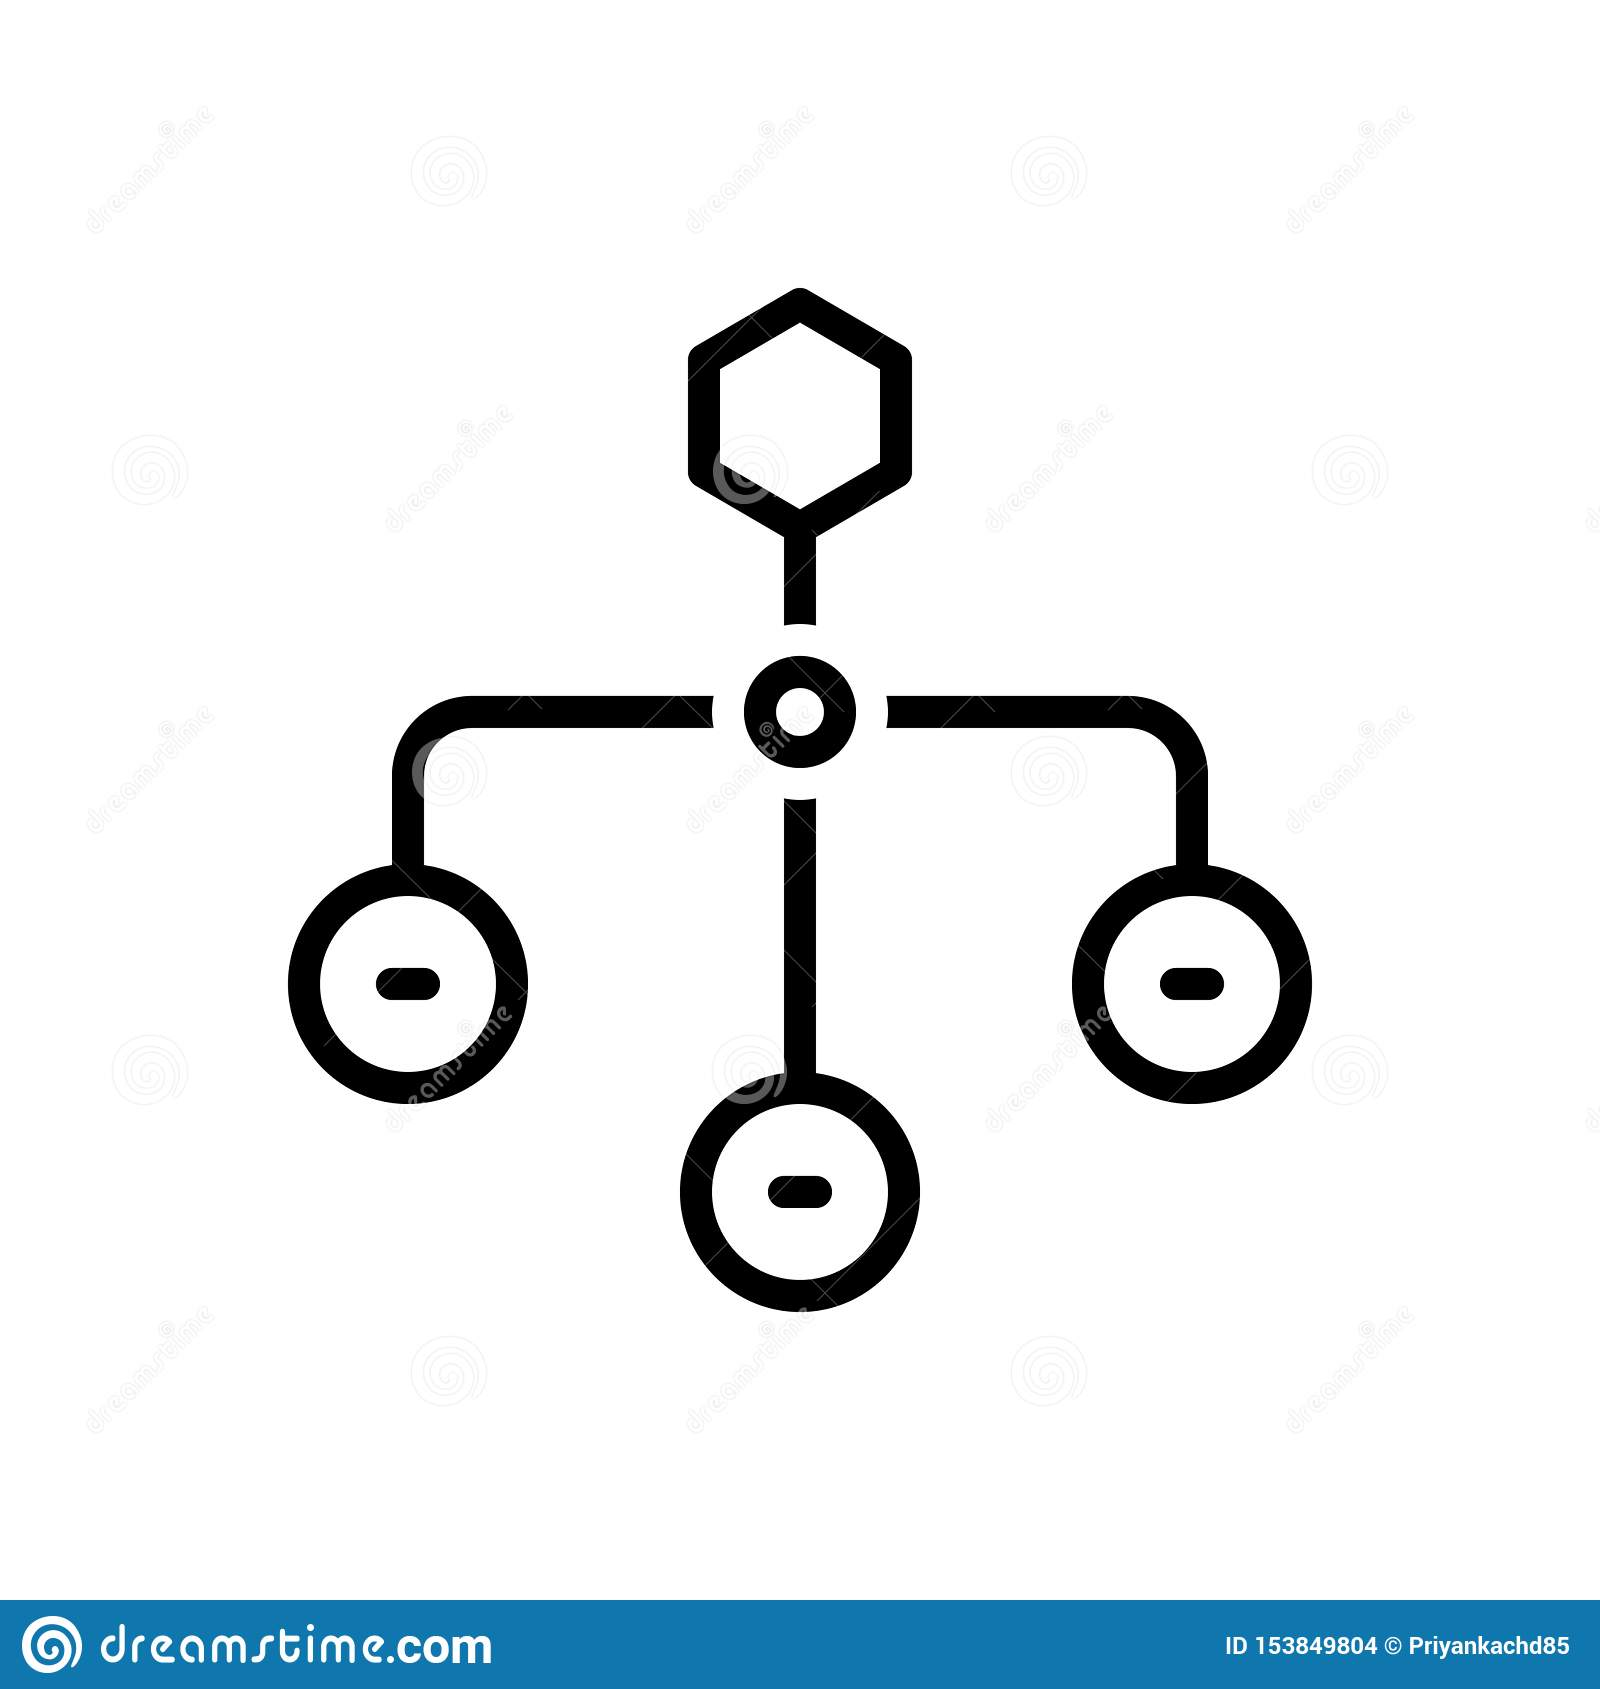 Black line icon for Hierarchical Structure, sitemap and layout